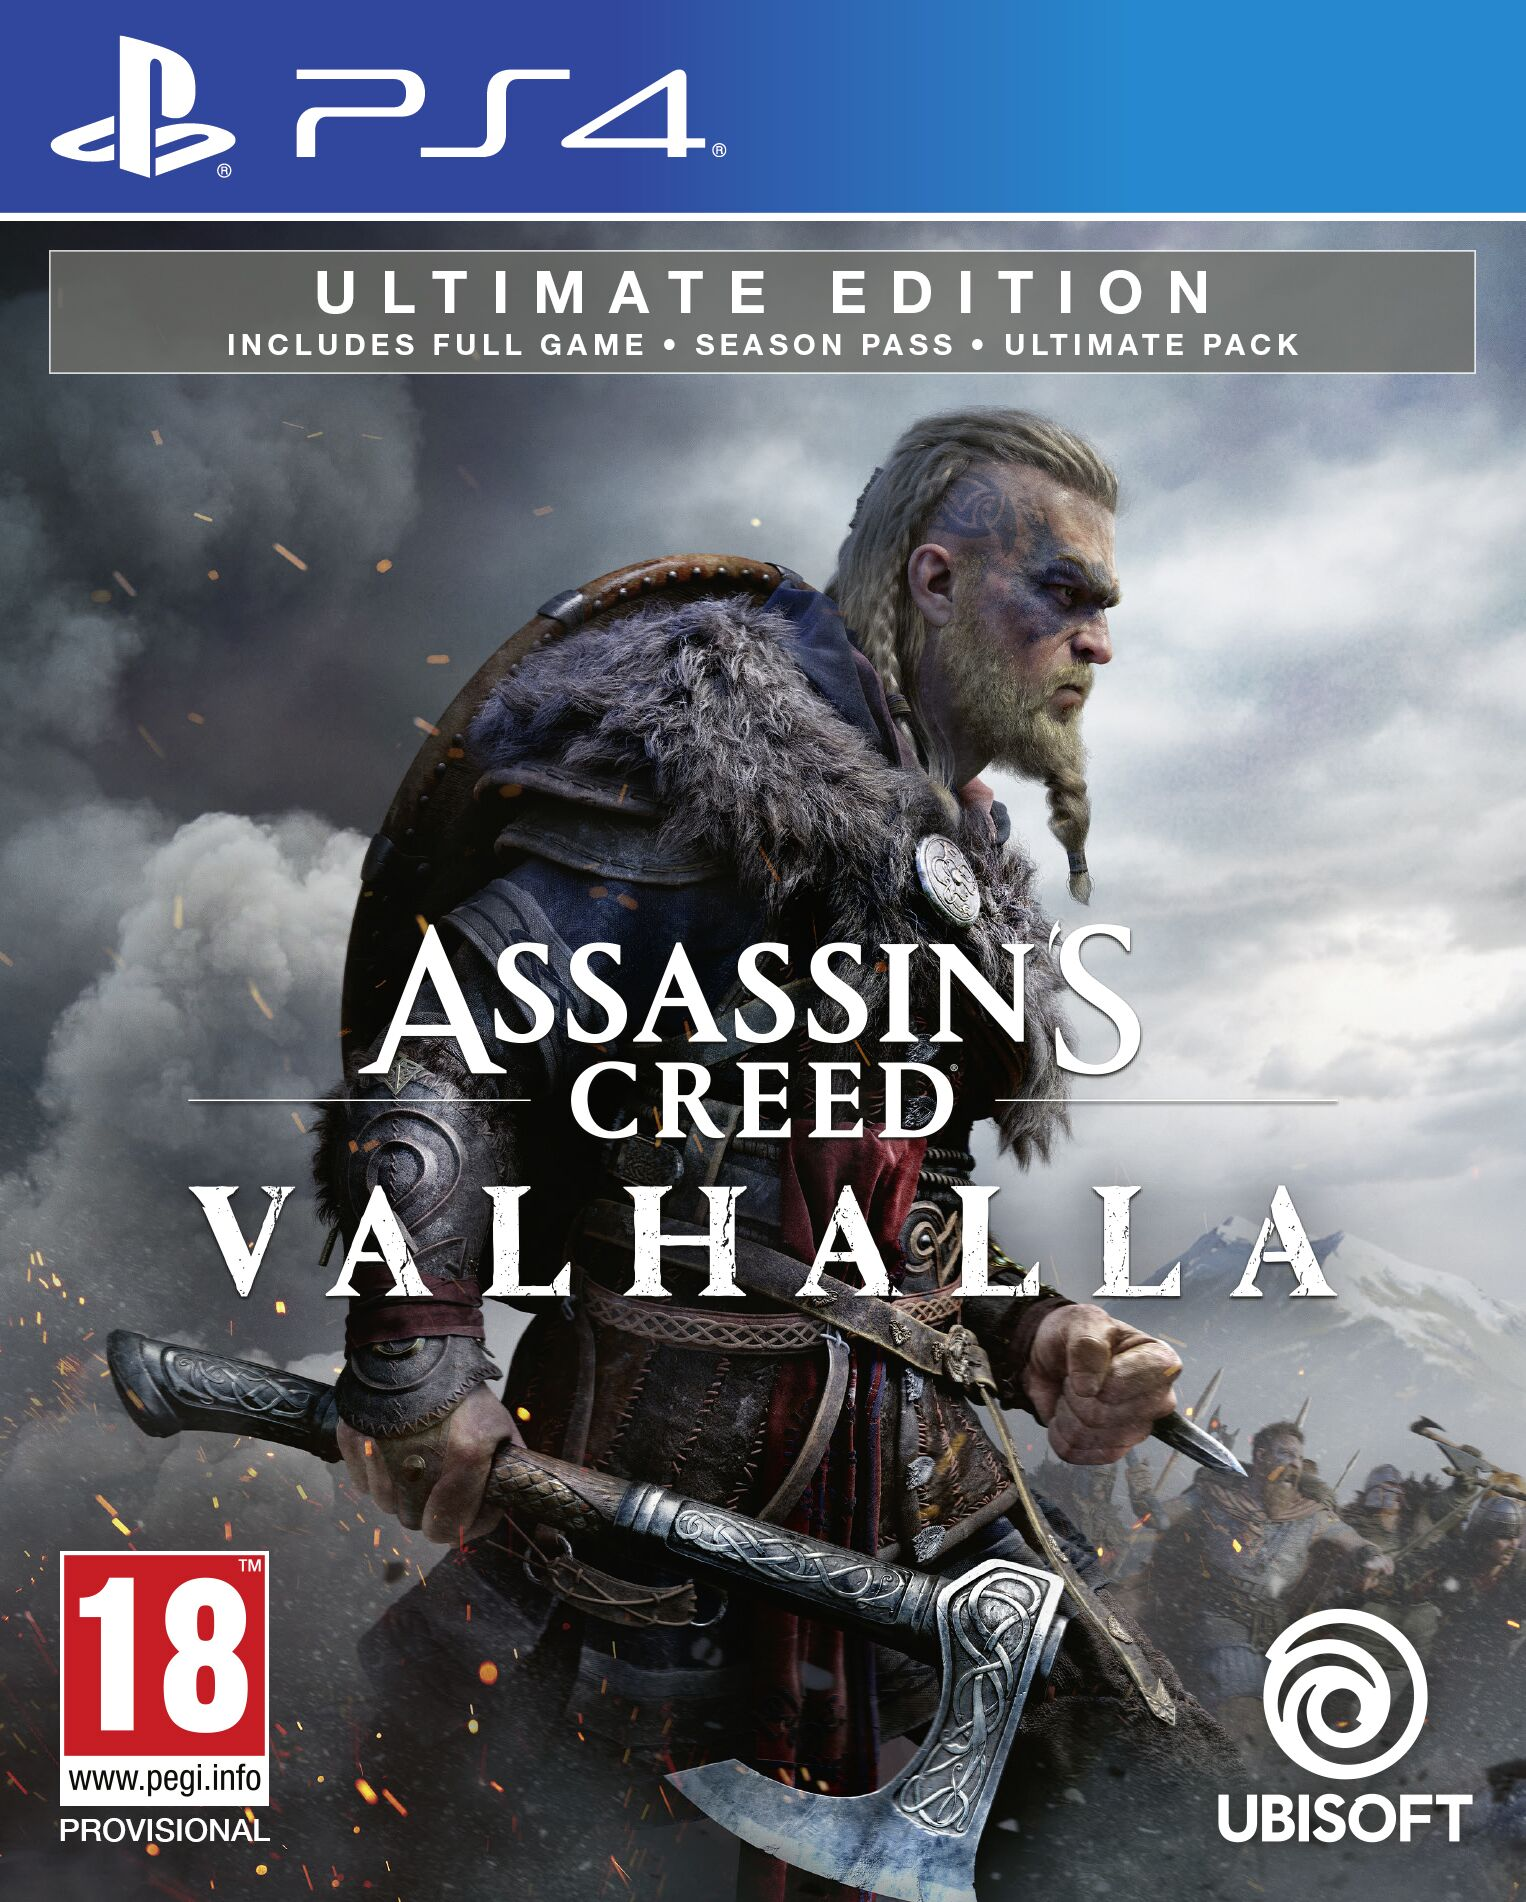 Assassin's Creed Valhalla Price in India,assassins creed valhalla, assassins creed valhalla release date, assassins creed valhalla game size, assassins creed valhalla release date in India, assassins creed valhalla download size